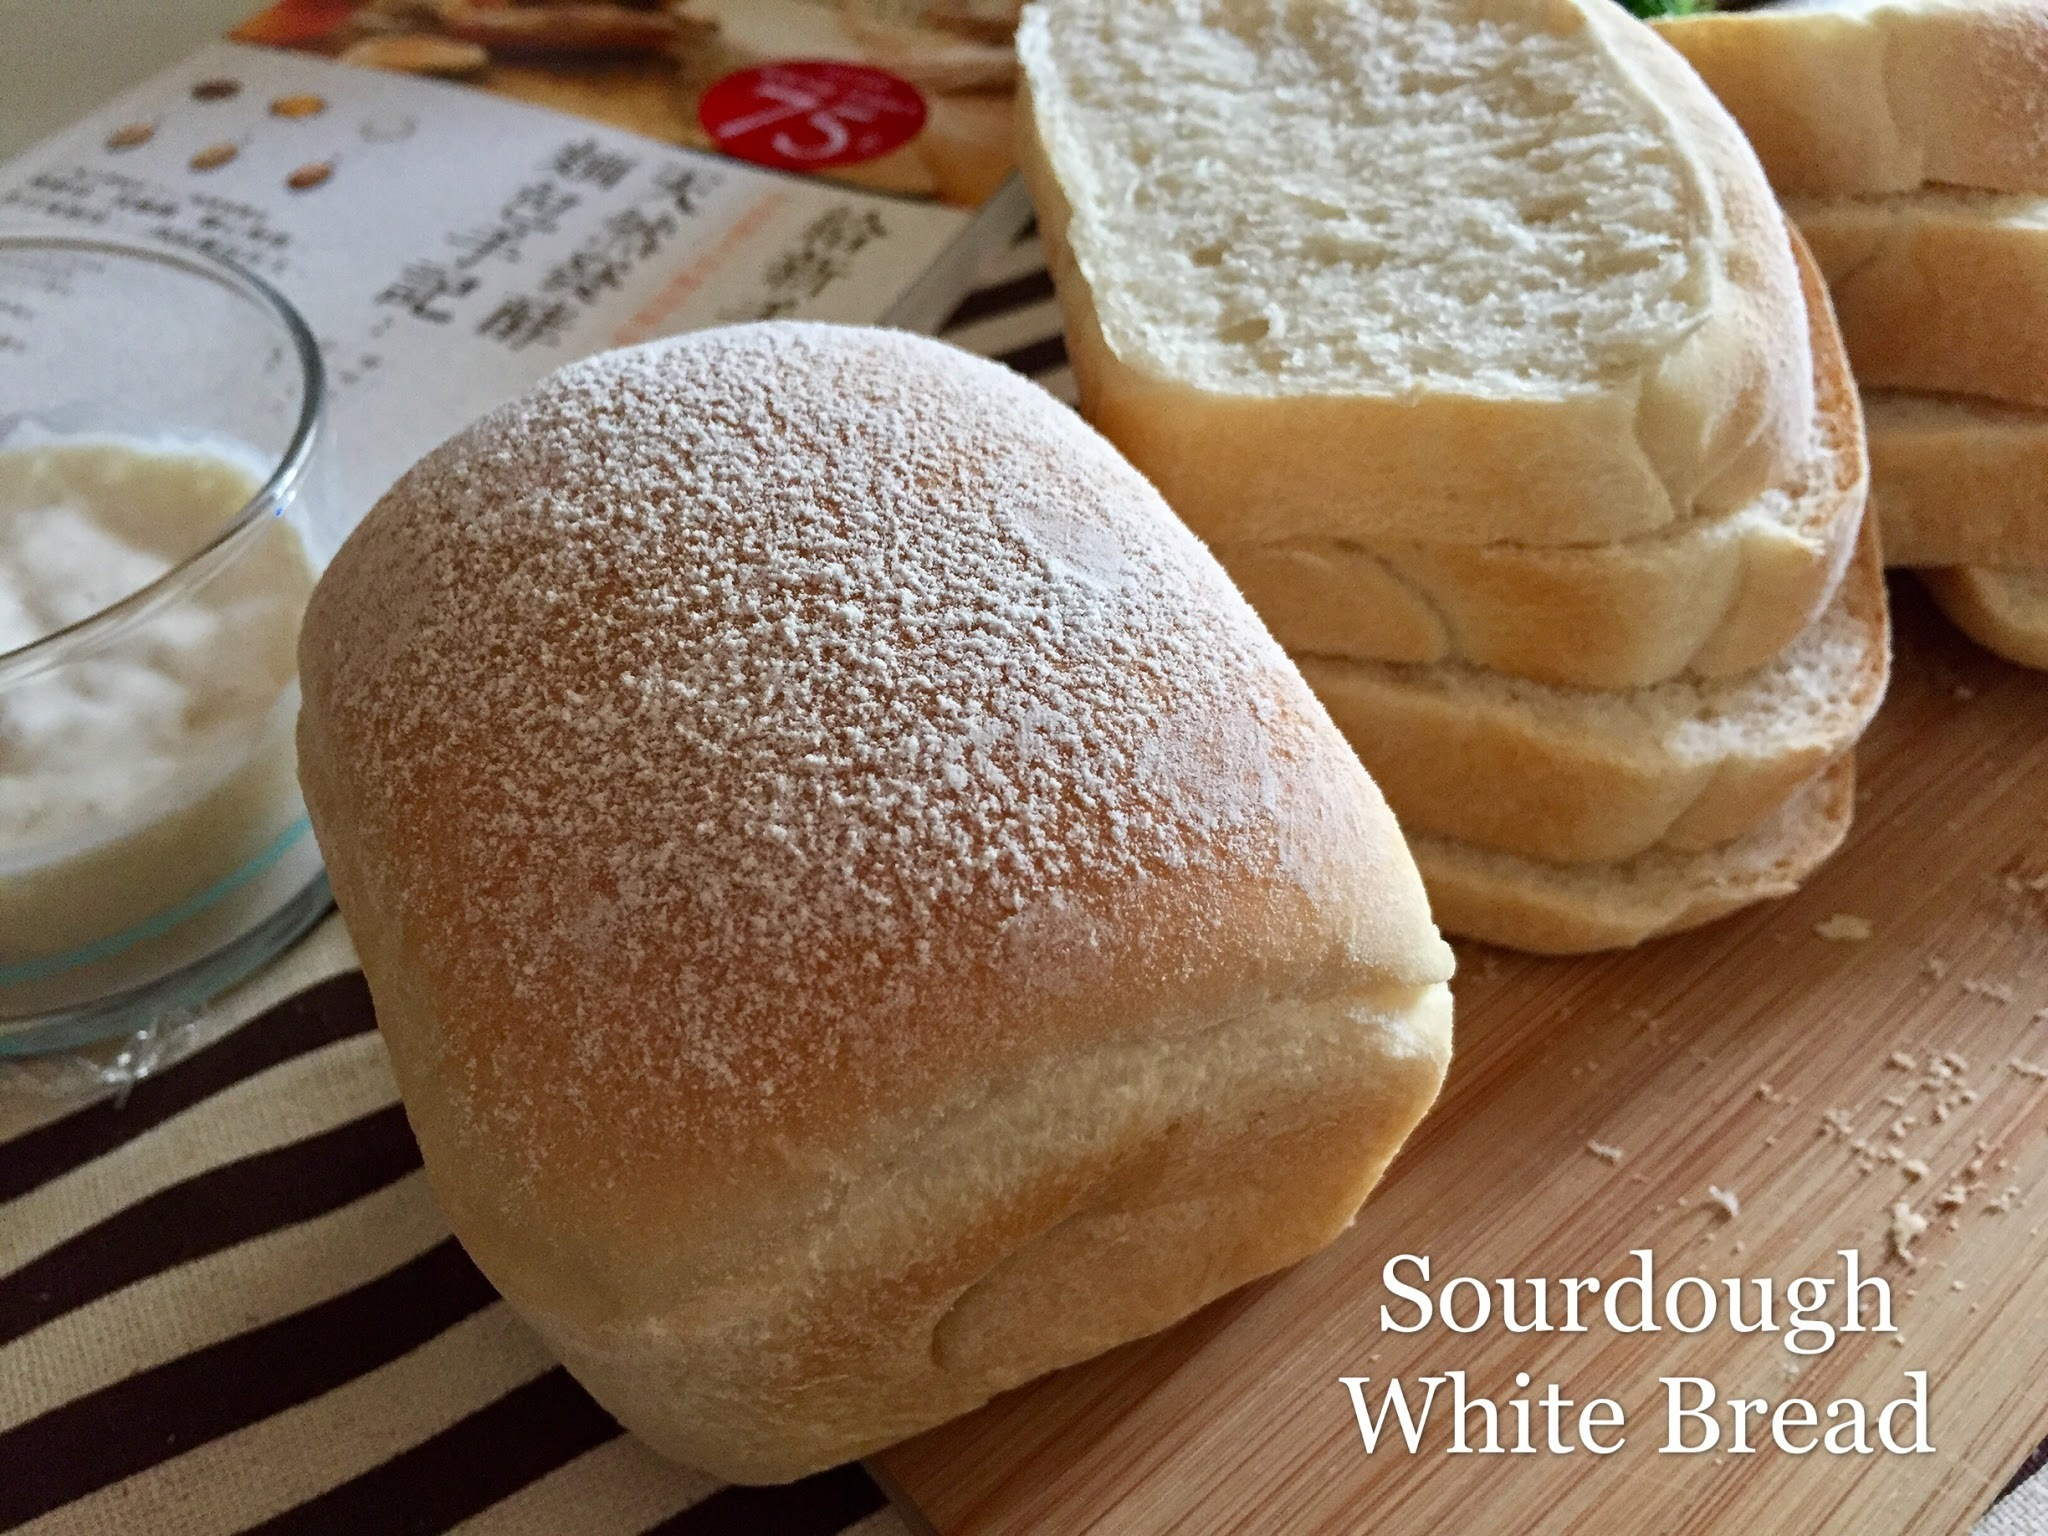 Sourdough White Bread 酸种白面包